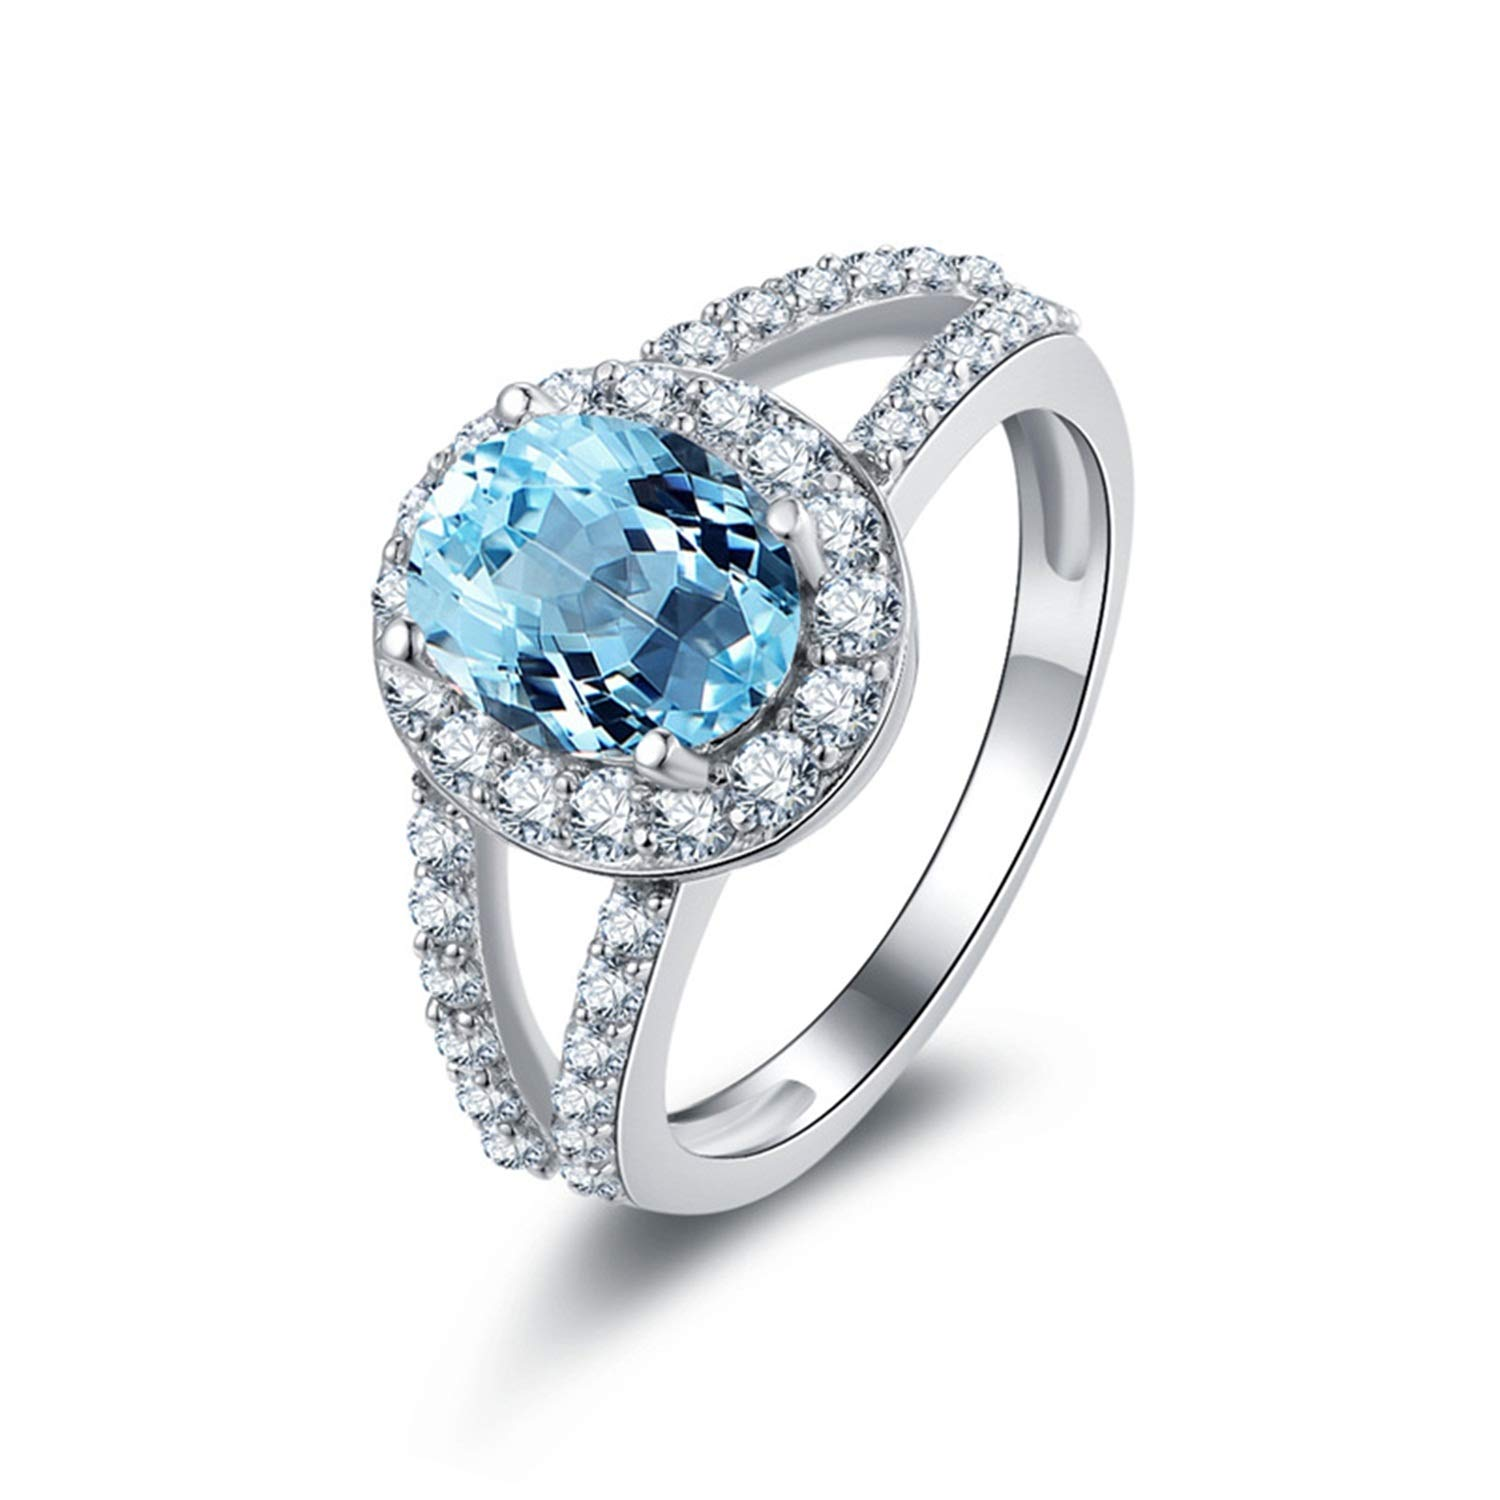 AMDXD Jewelry 925 Sterling Silver Ring for Women Blue Oval Cut Topaz Oval Rings